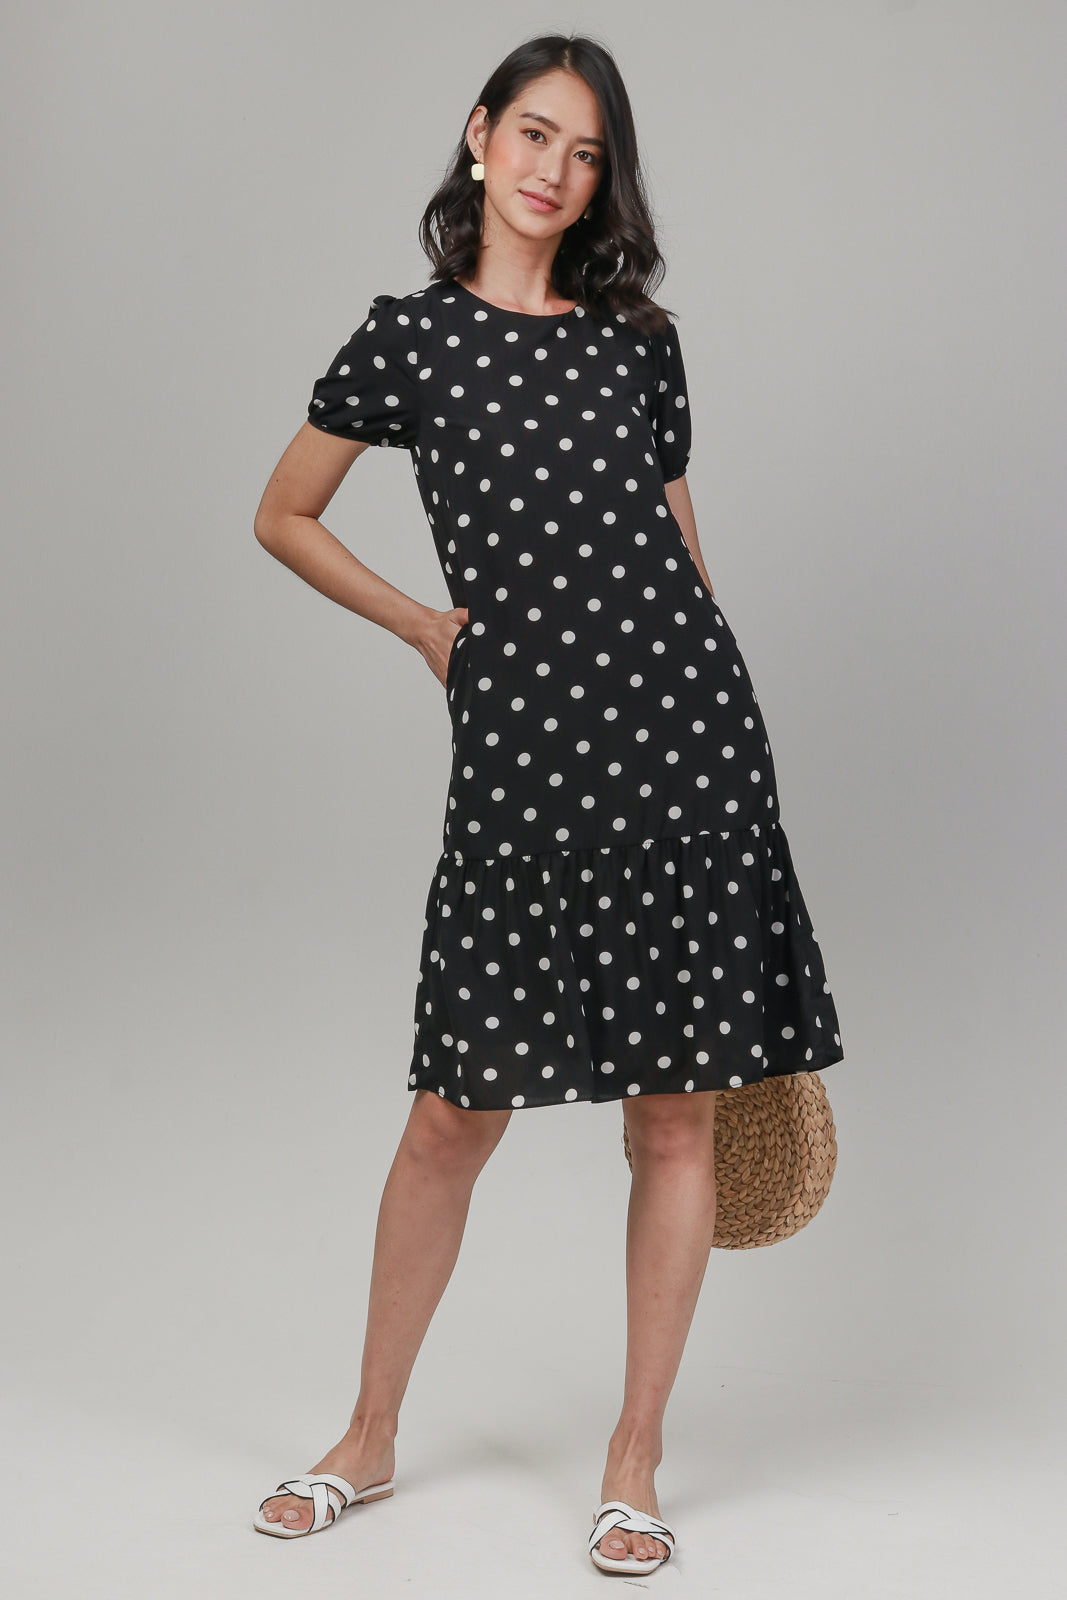 Polkadots Sleeved Drophem Dress in Black